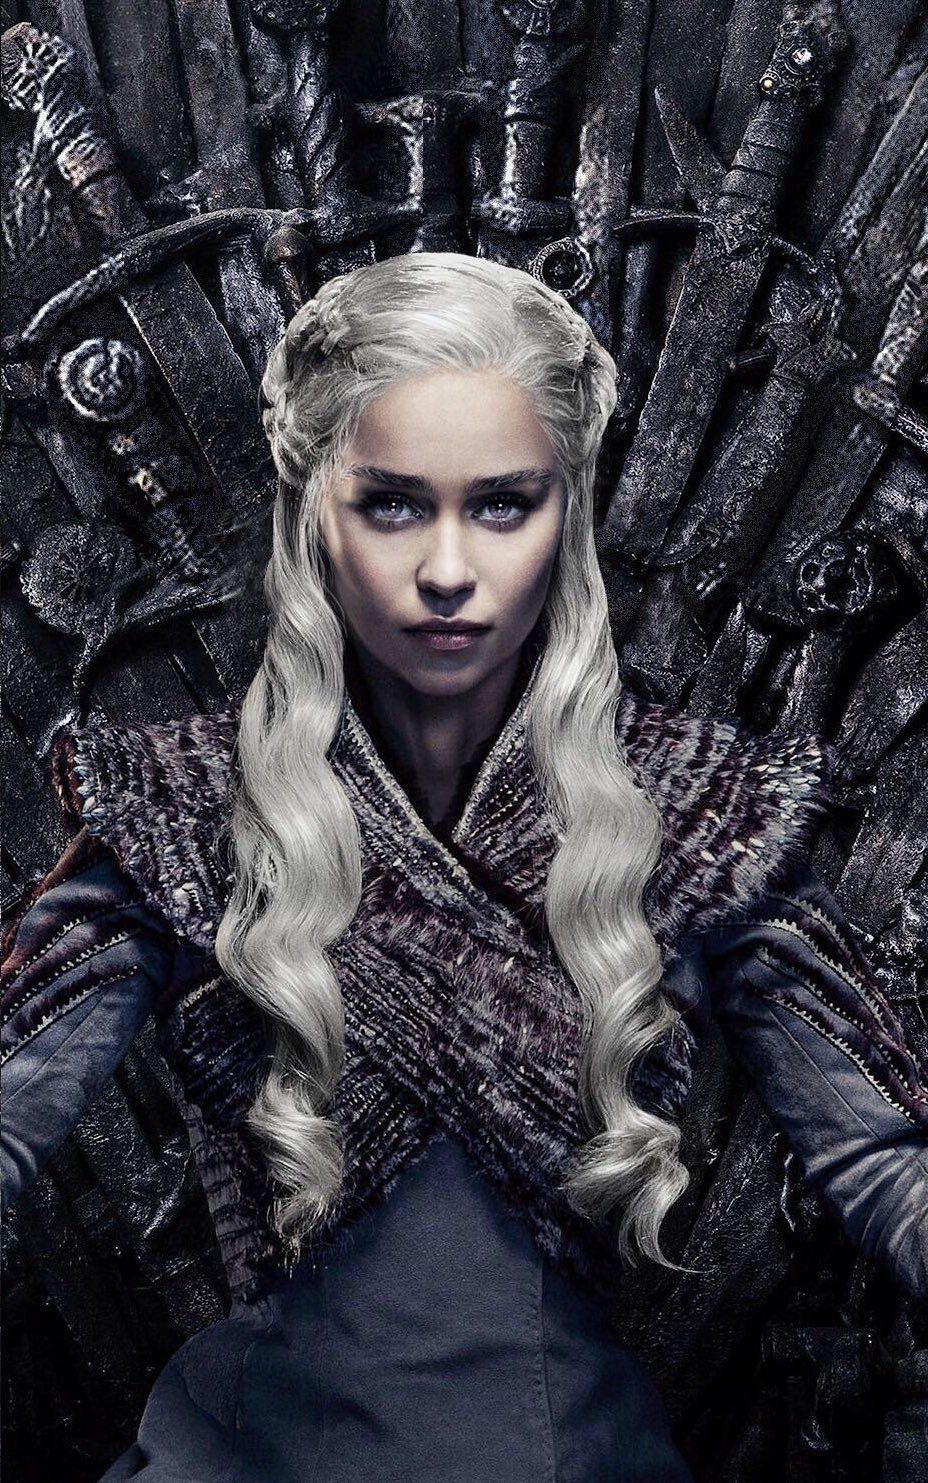 Pin By Blaxk Orion On Watch N Read Mother Of Dragons Game Of Thrones Costumes Game Of Thrones Artwork Game of thrones wallpaper iphone xs max